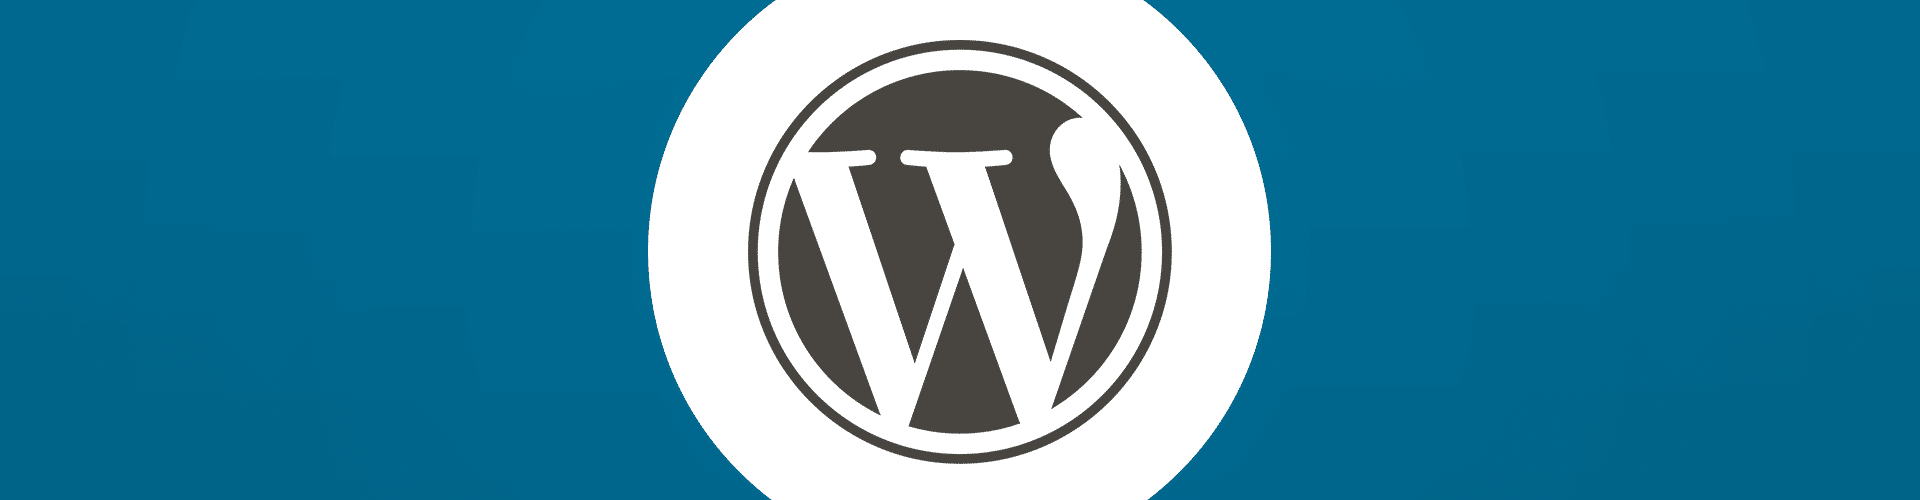 Wie funktioniert Internationalisierung mit WordPress?